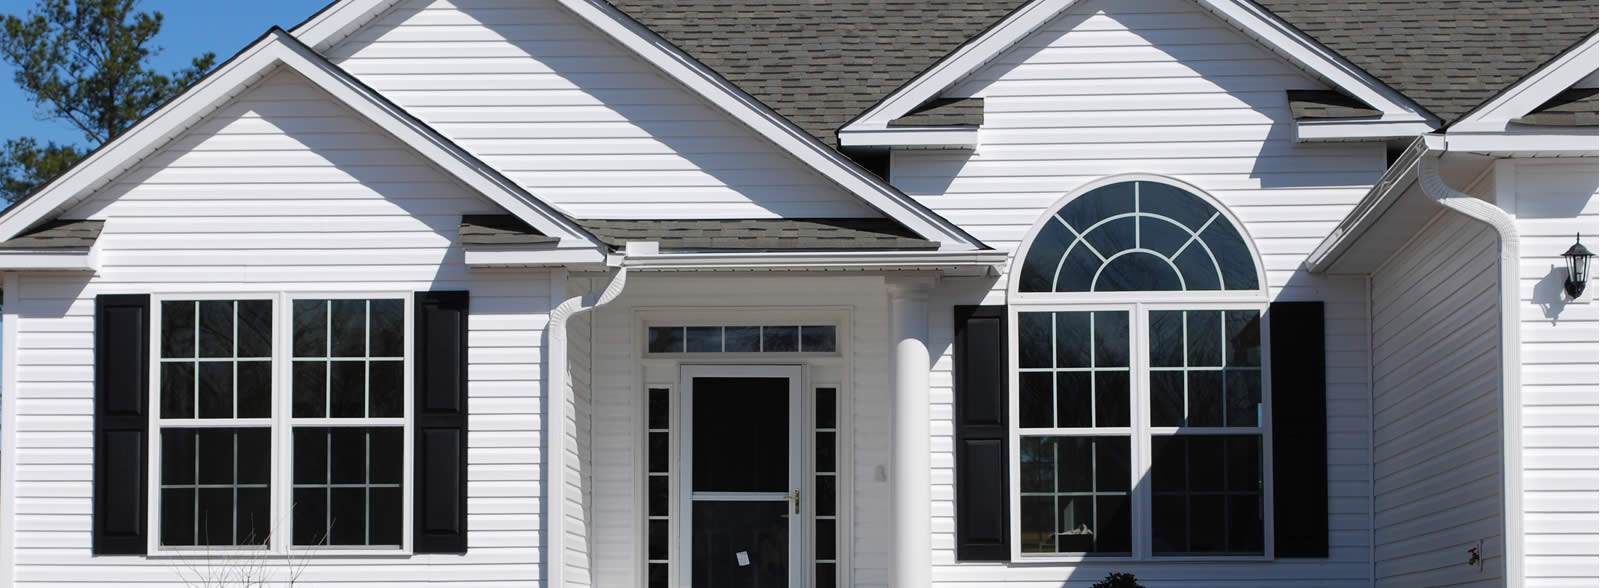 Vinyl Siding In Converse Tx Roofing And Exteriors